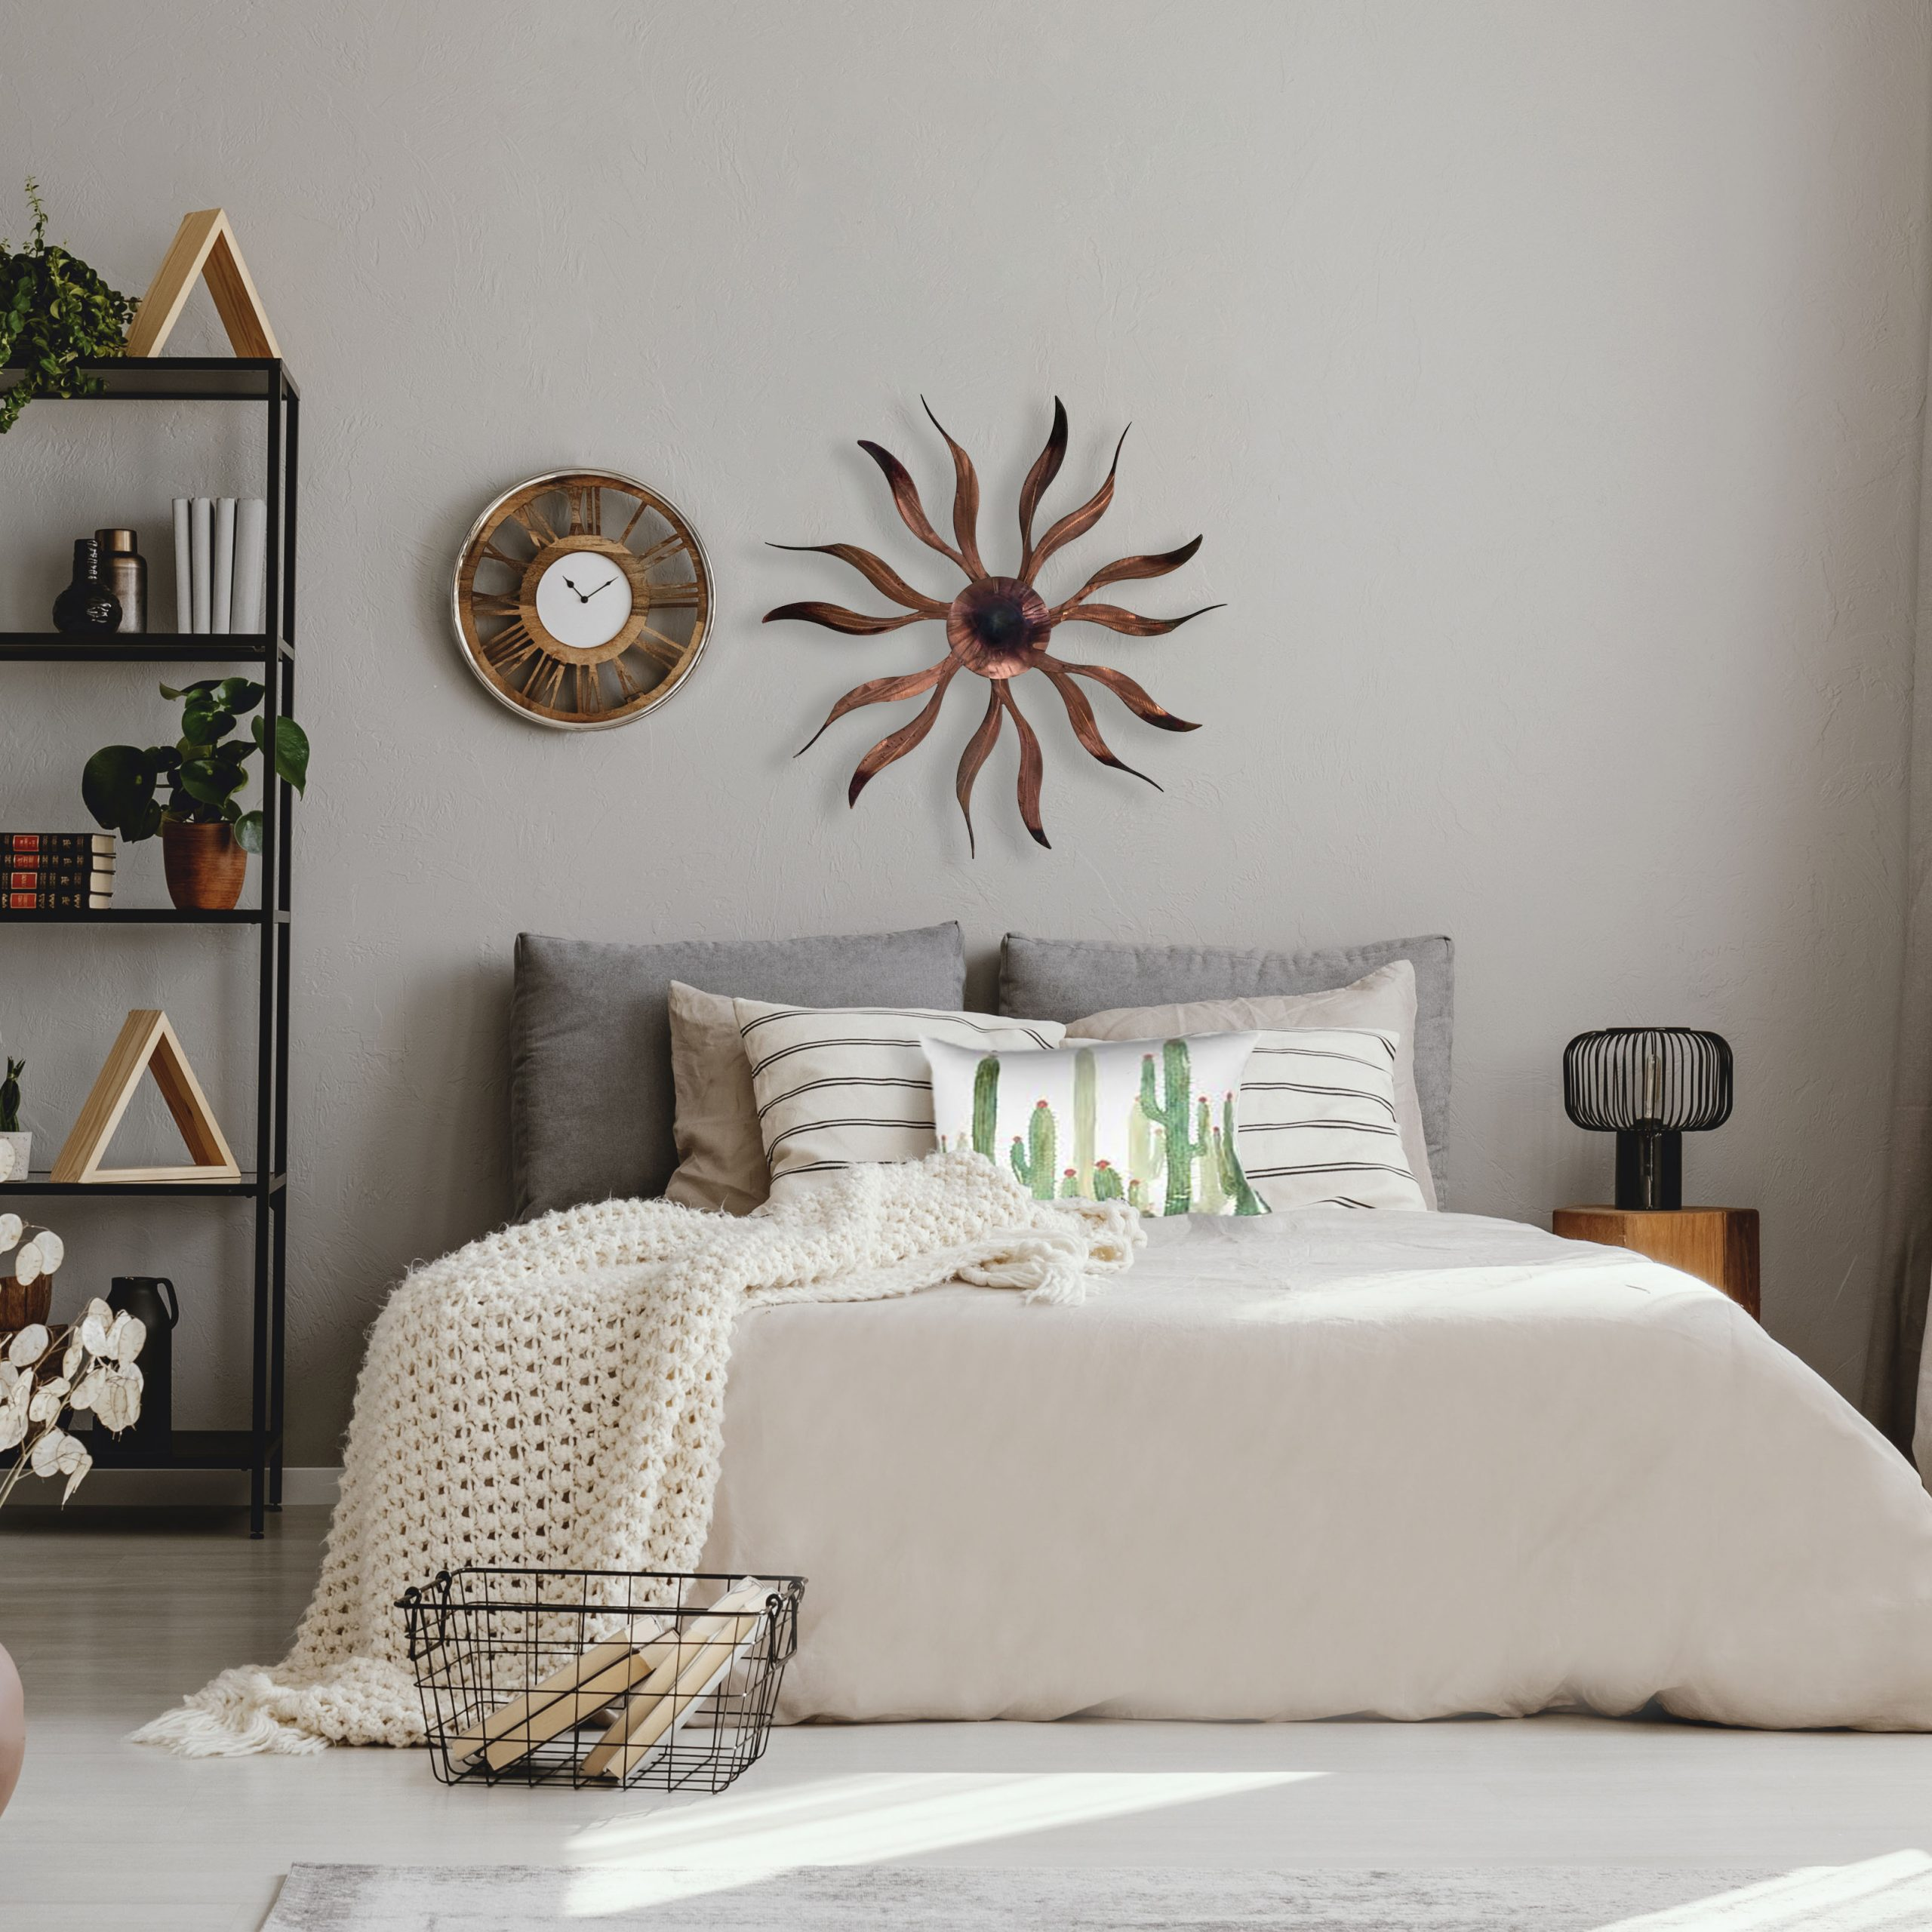 distressed-copper-desert-sun-over-bed-scaled